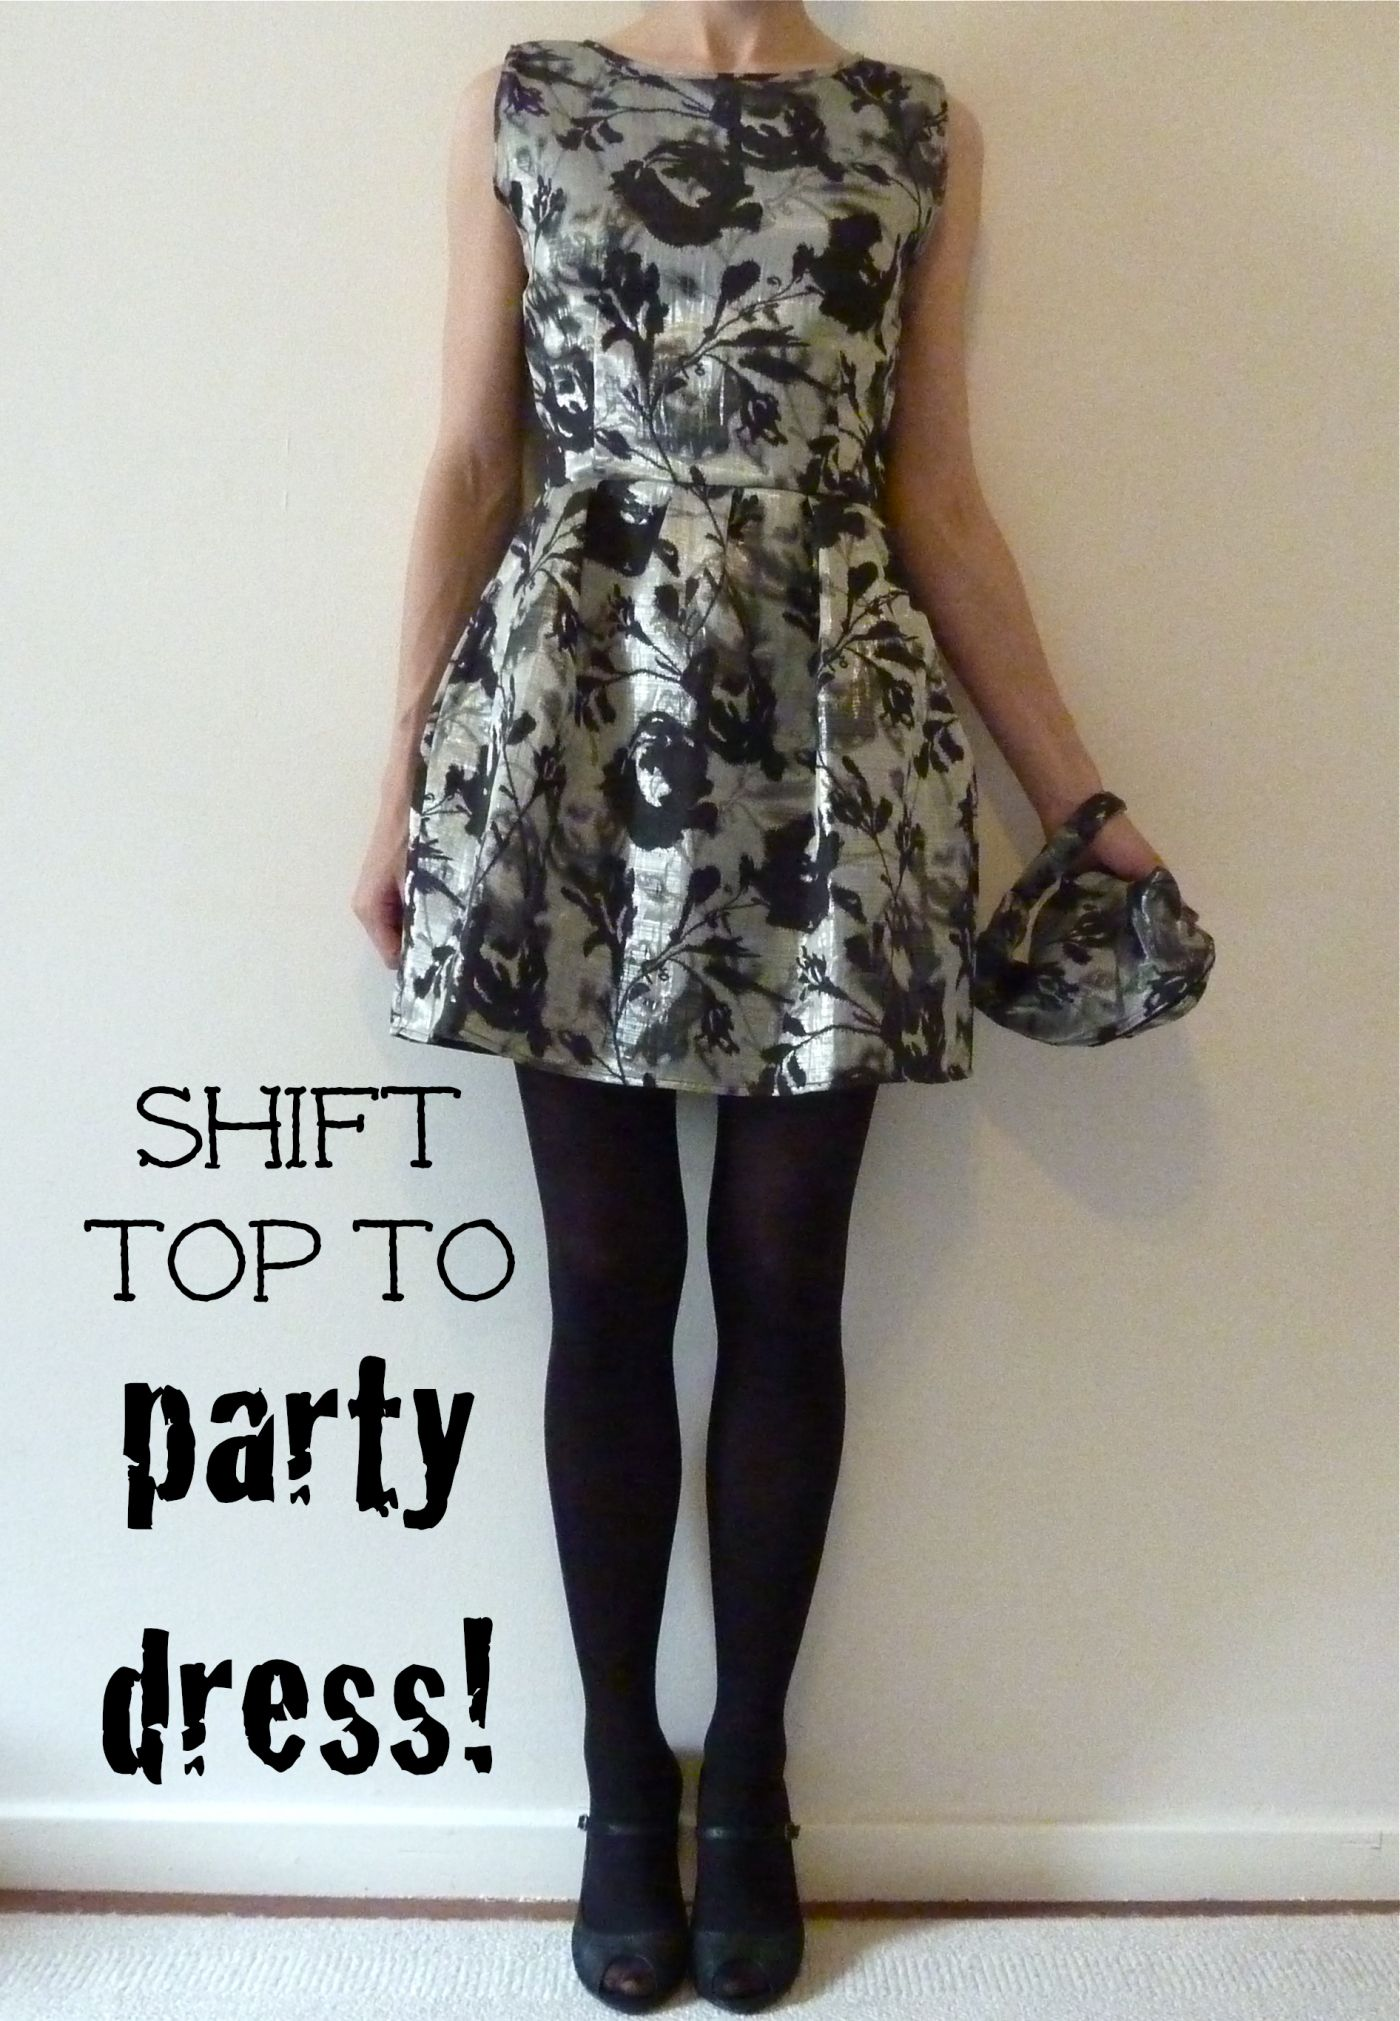 As mentioned in my previous pin, I love upcycling and thrift shopping, this dress is a stellar example of upcycling in its finest! Take an oversized, bold printed shirt, and tapper at the waist (as long as the other tailoring needed for it to fit)! It's custom made to your size, and is way cheaper than buying a new dress!